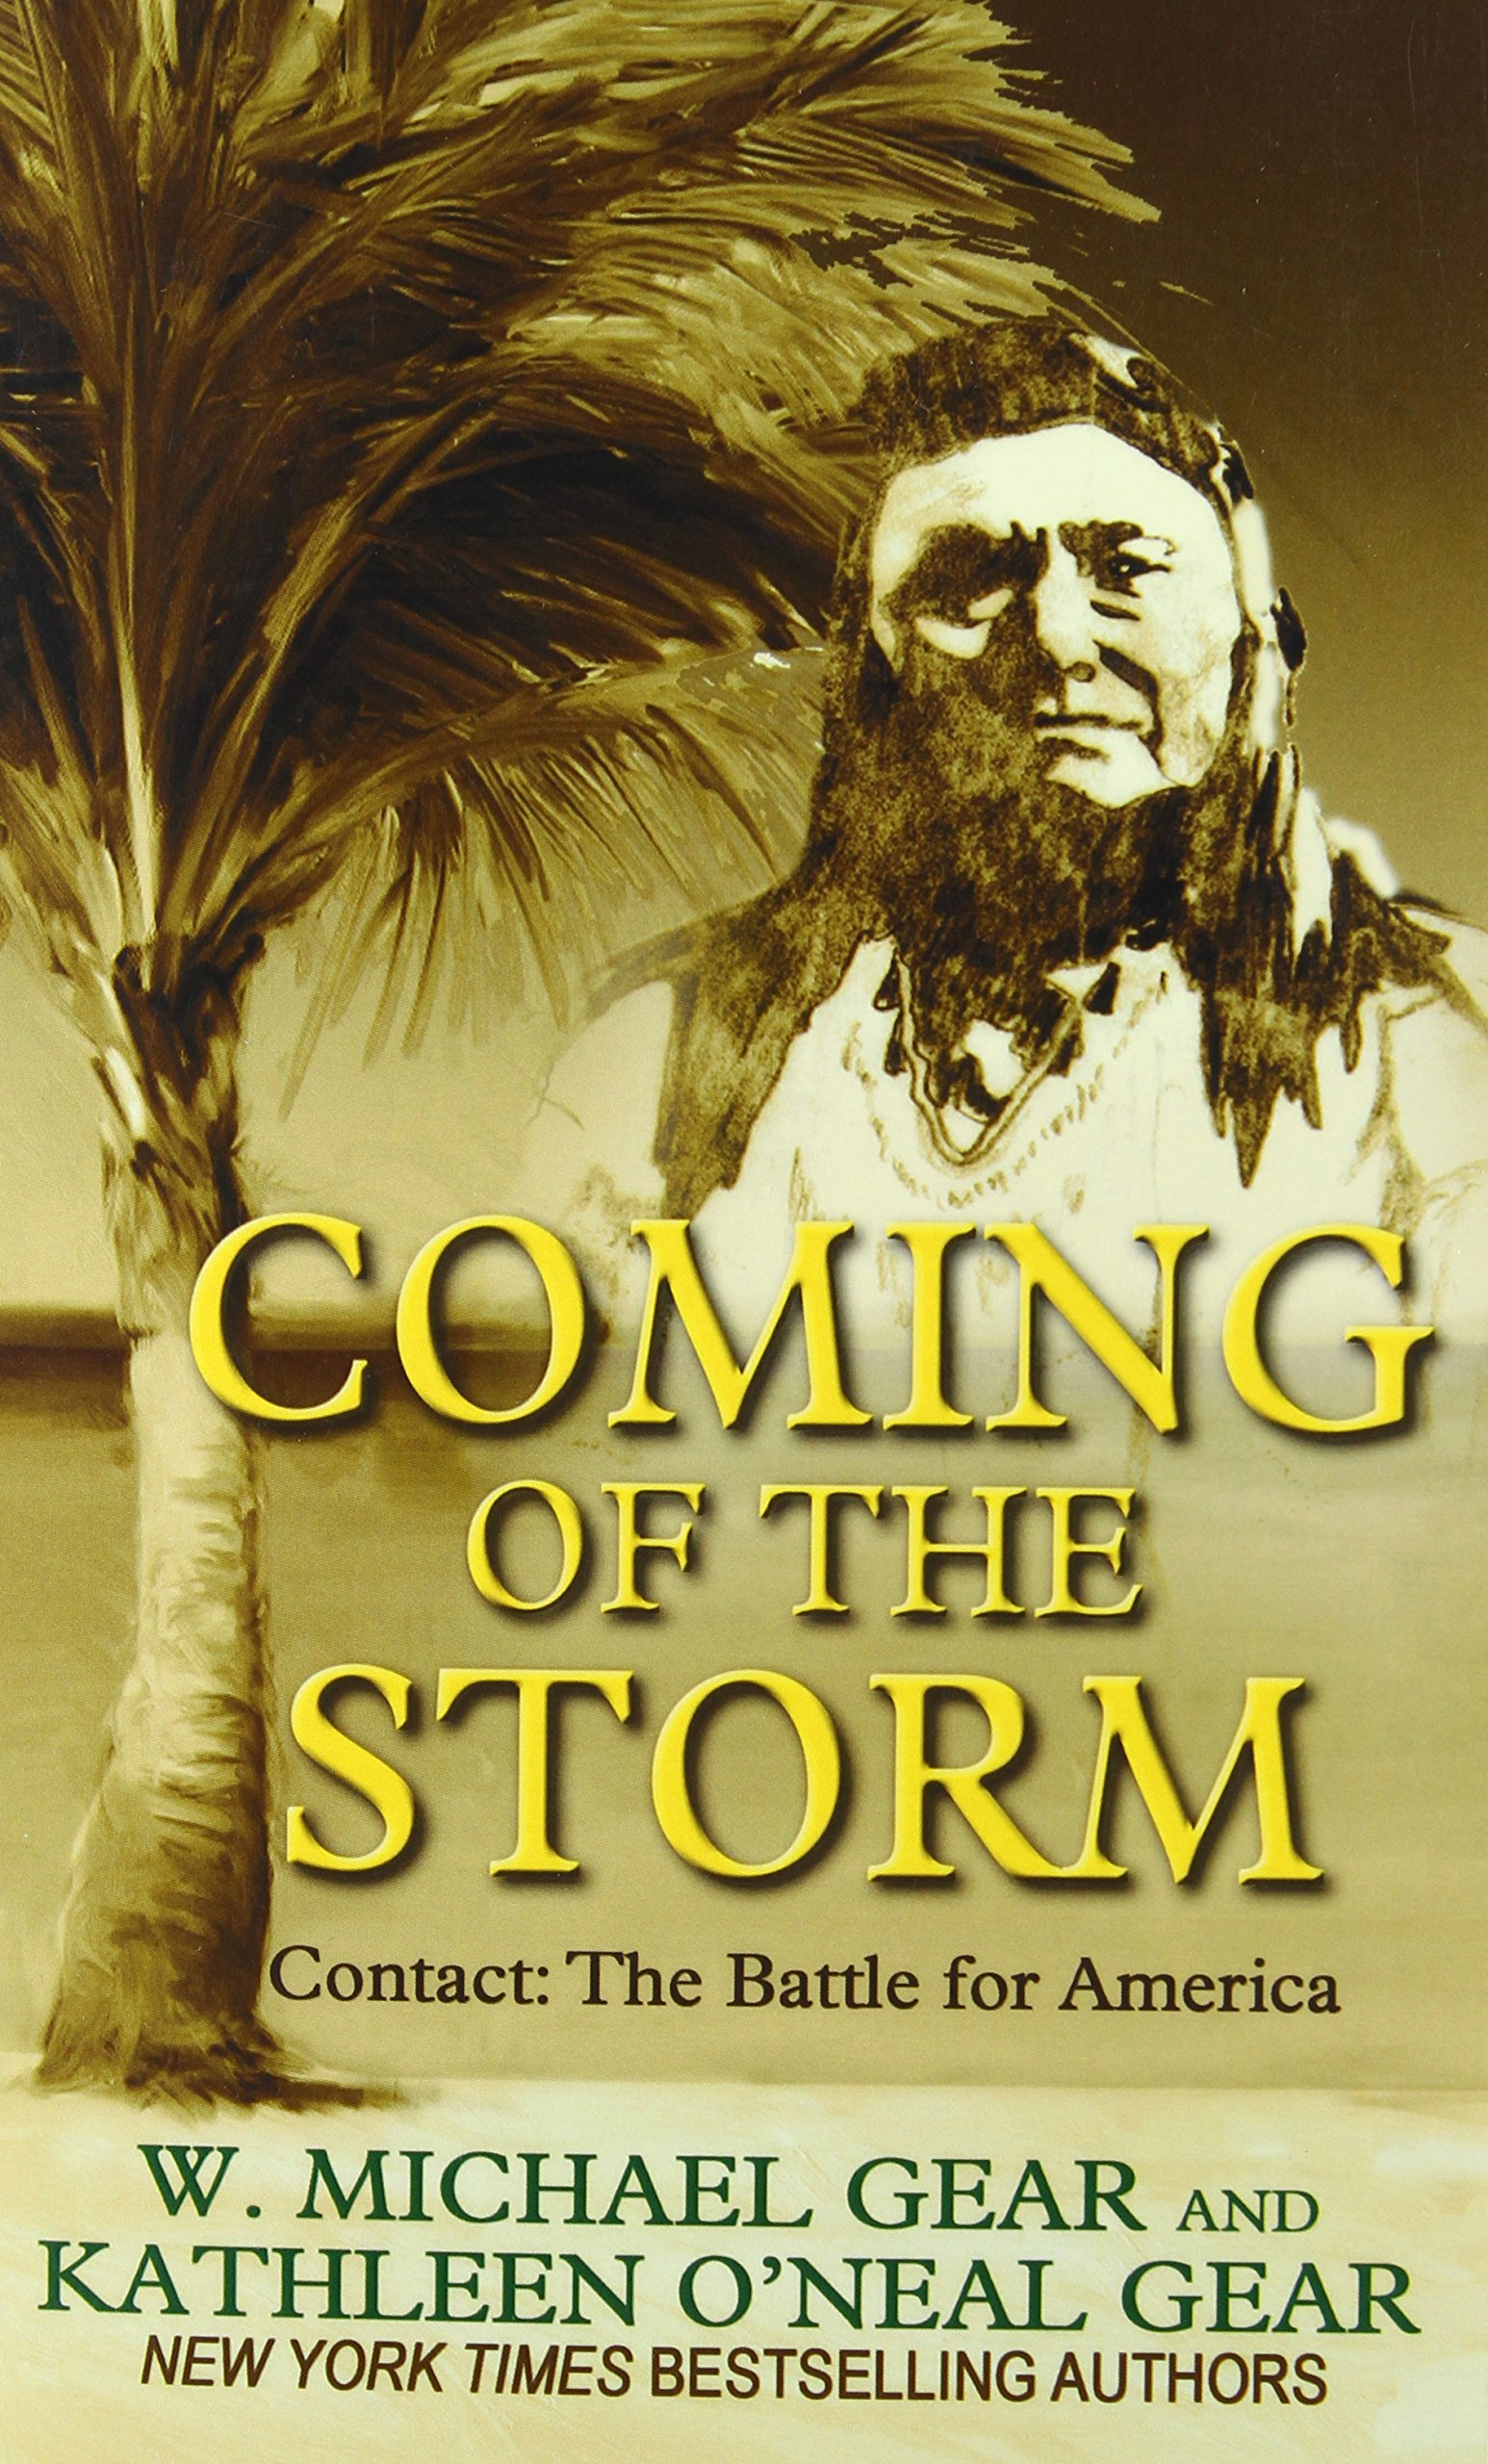 Coming Of The Storm (Contact: The Battle for America) pdf